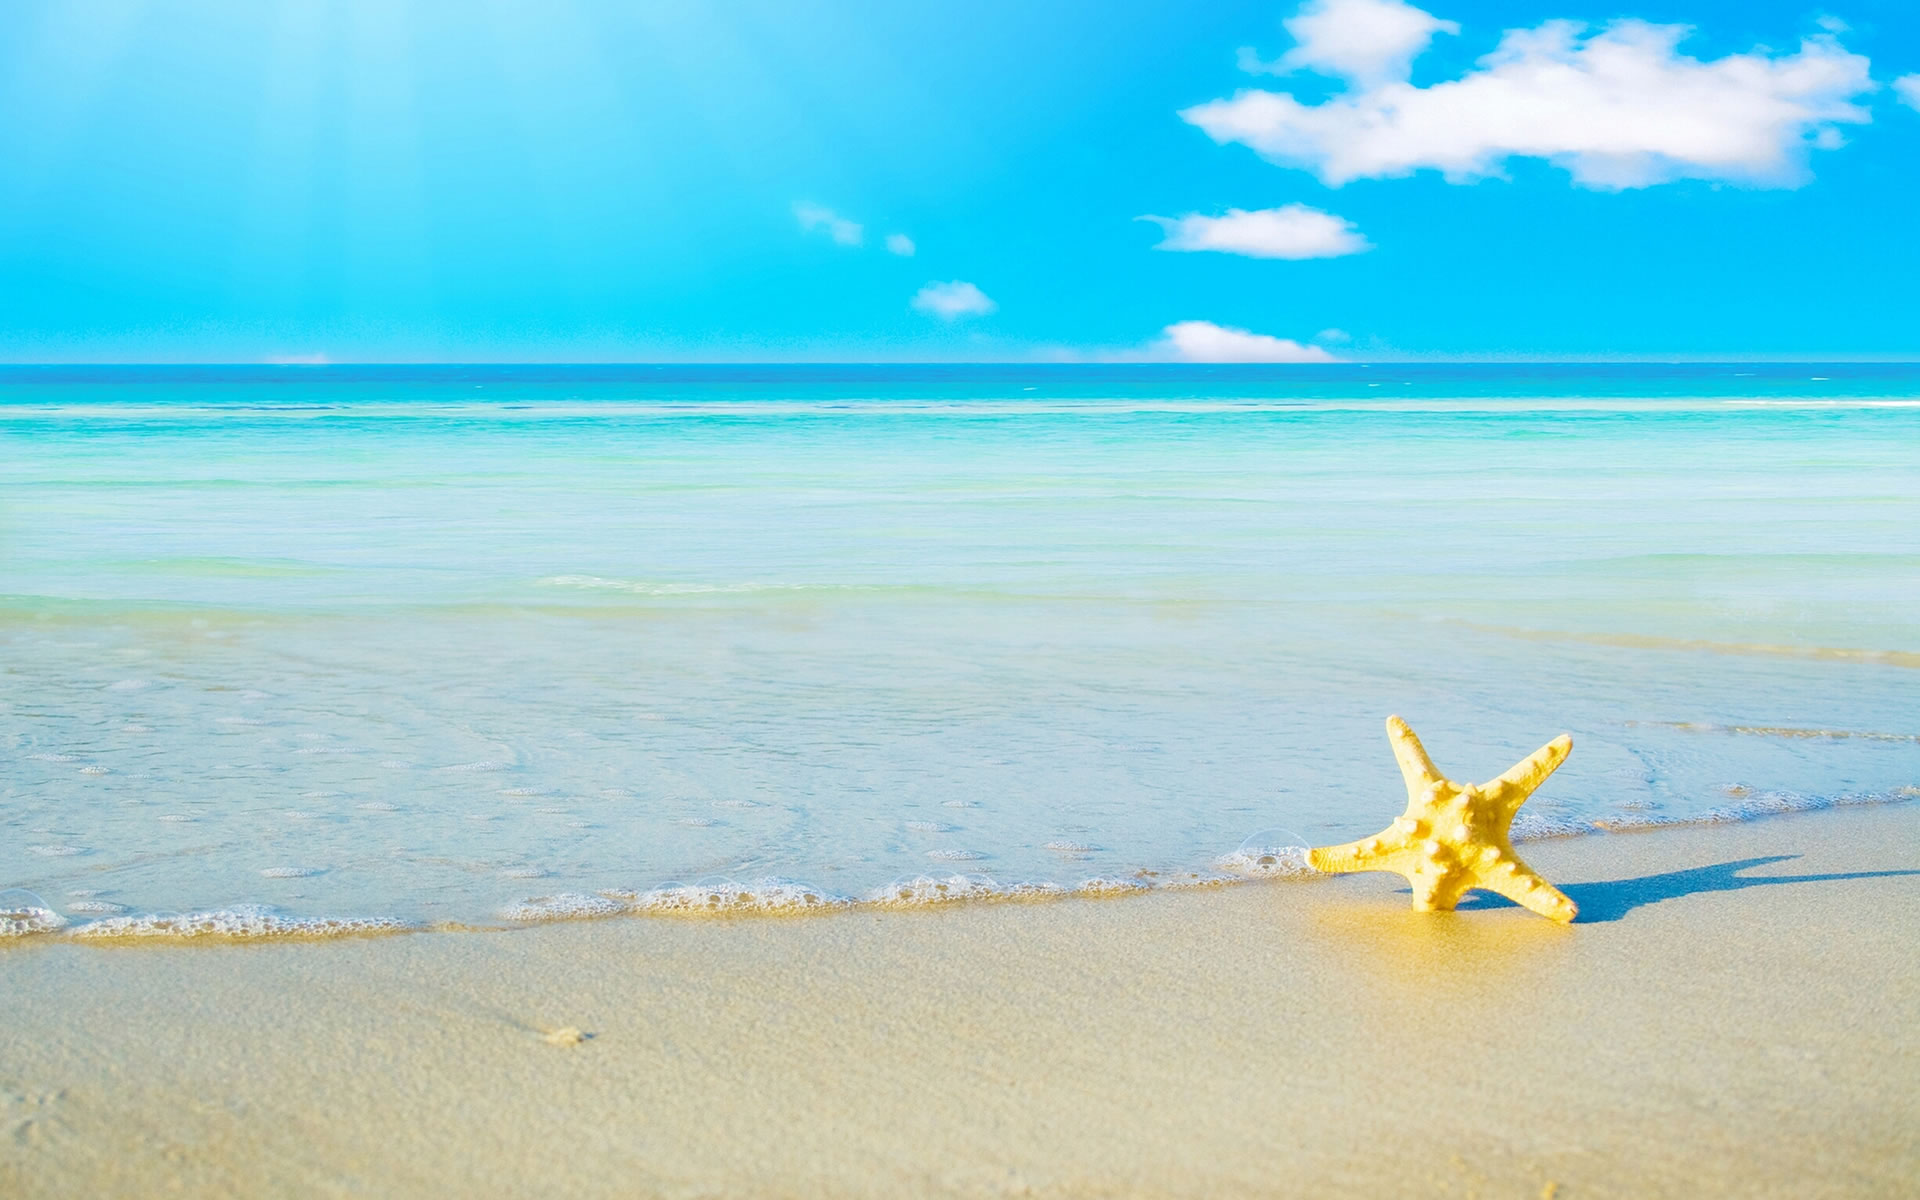 Starfish Summer Wallpaper